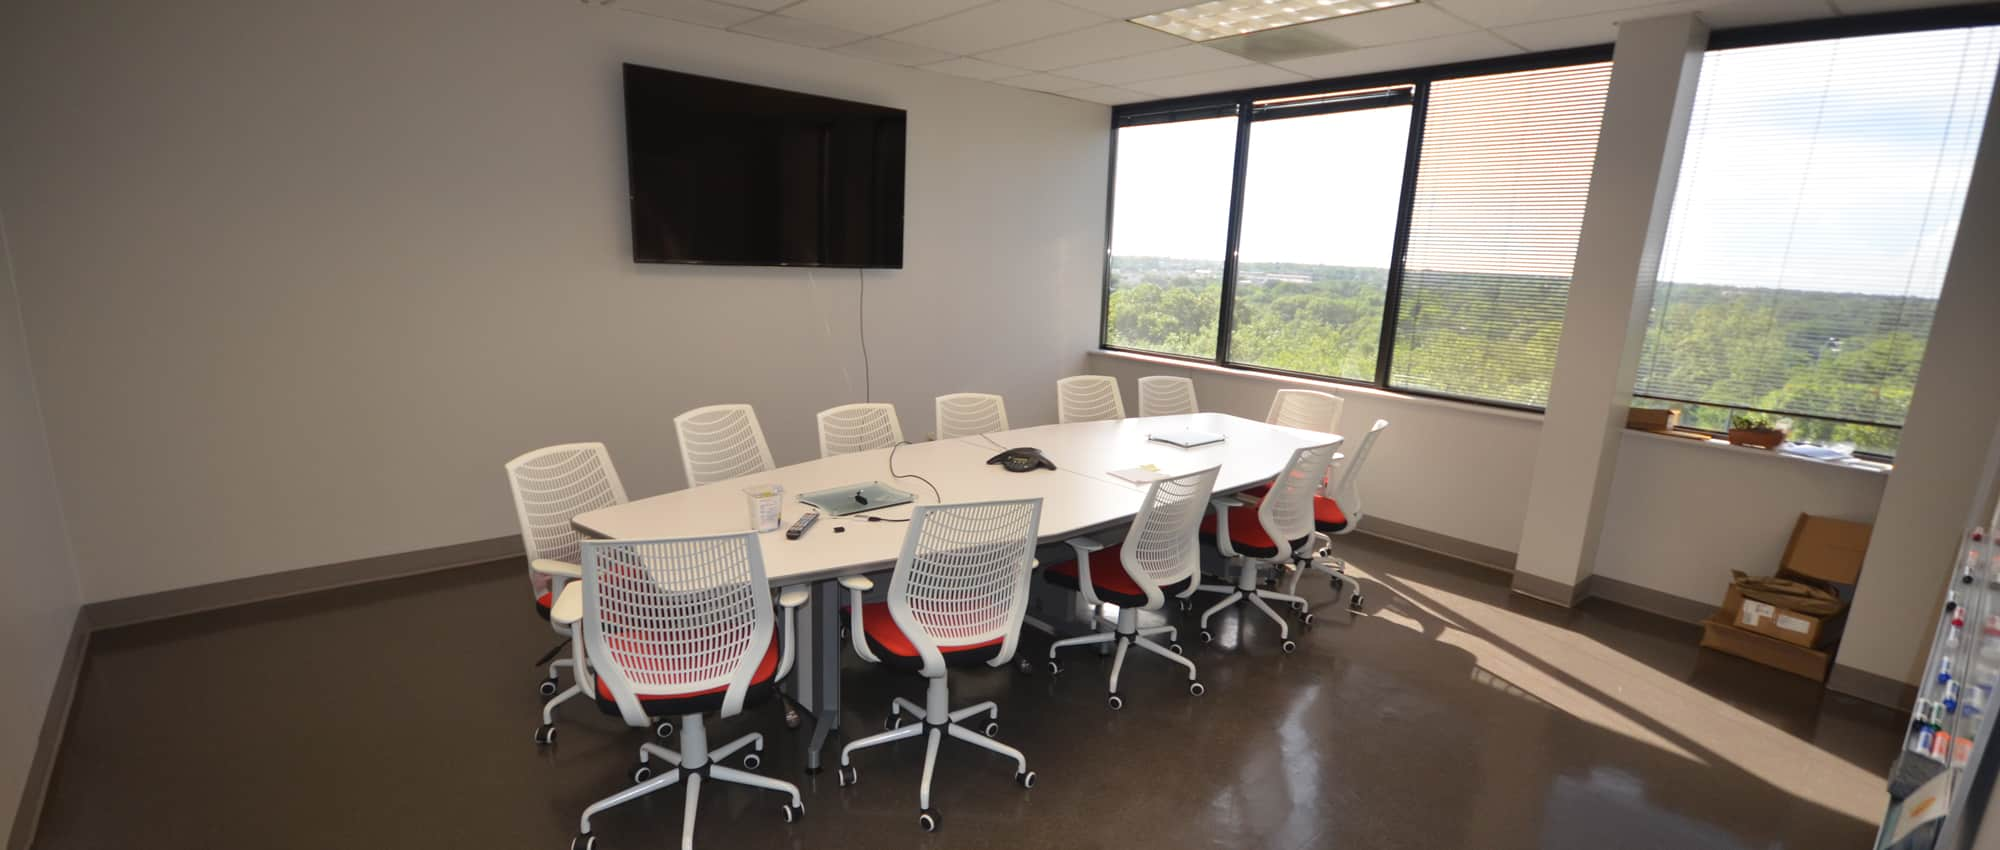 Sublease: Austin Oaks Travis Building Conference Room | 3520 Executive Center Drive in Austin, Texas